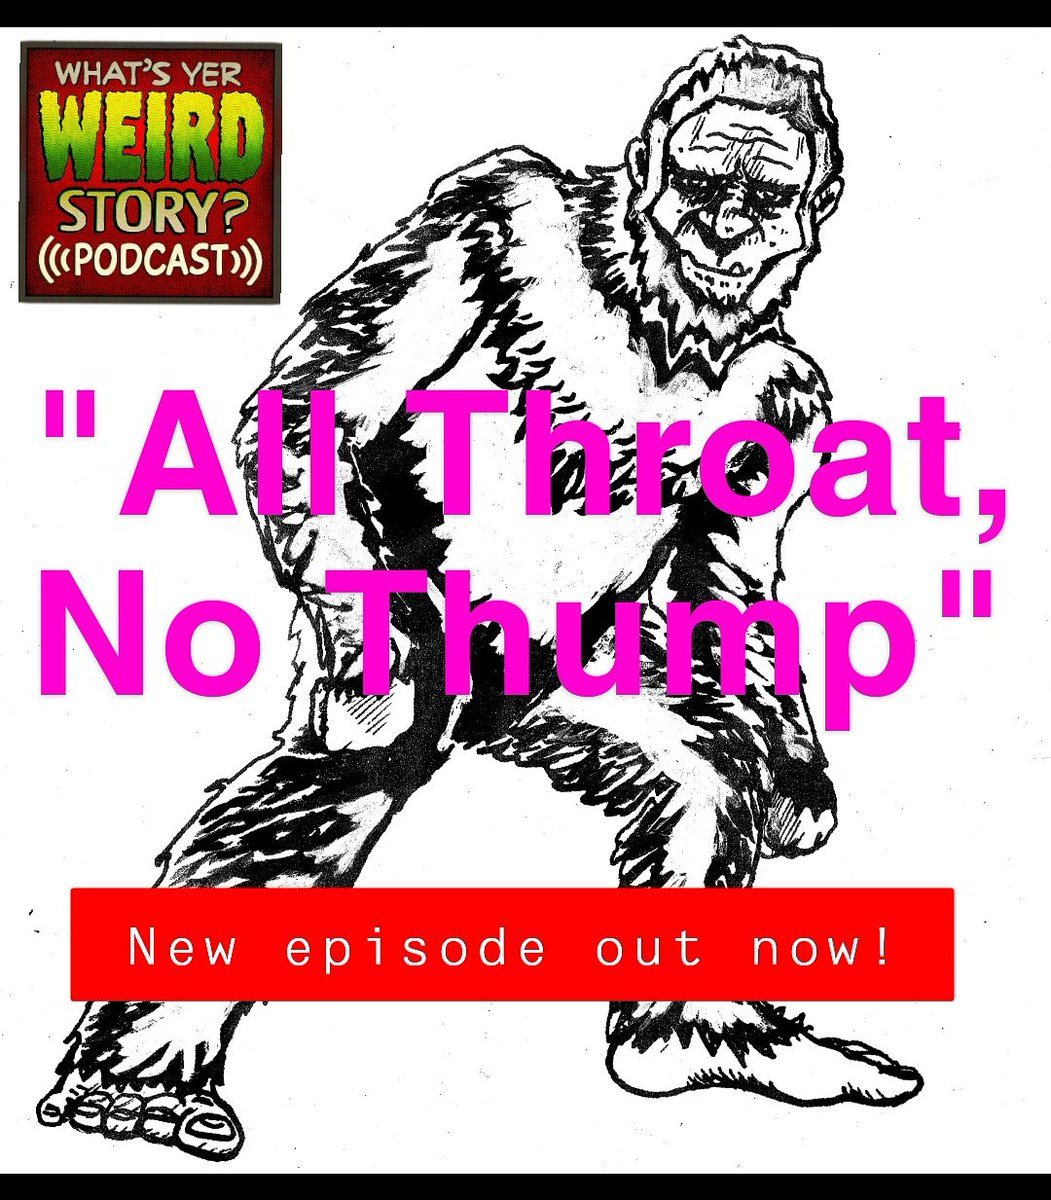 What's Yer Weird Story Podcast on Twitter: